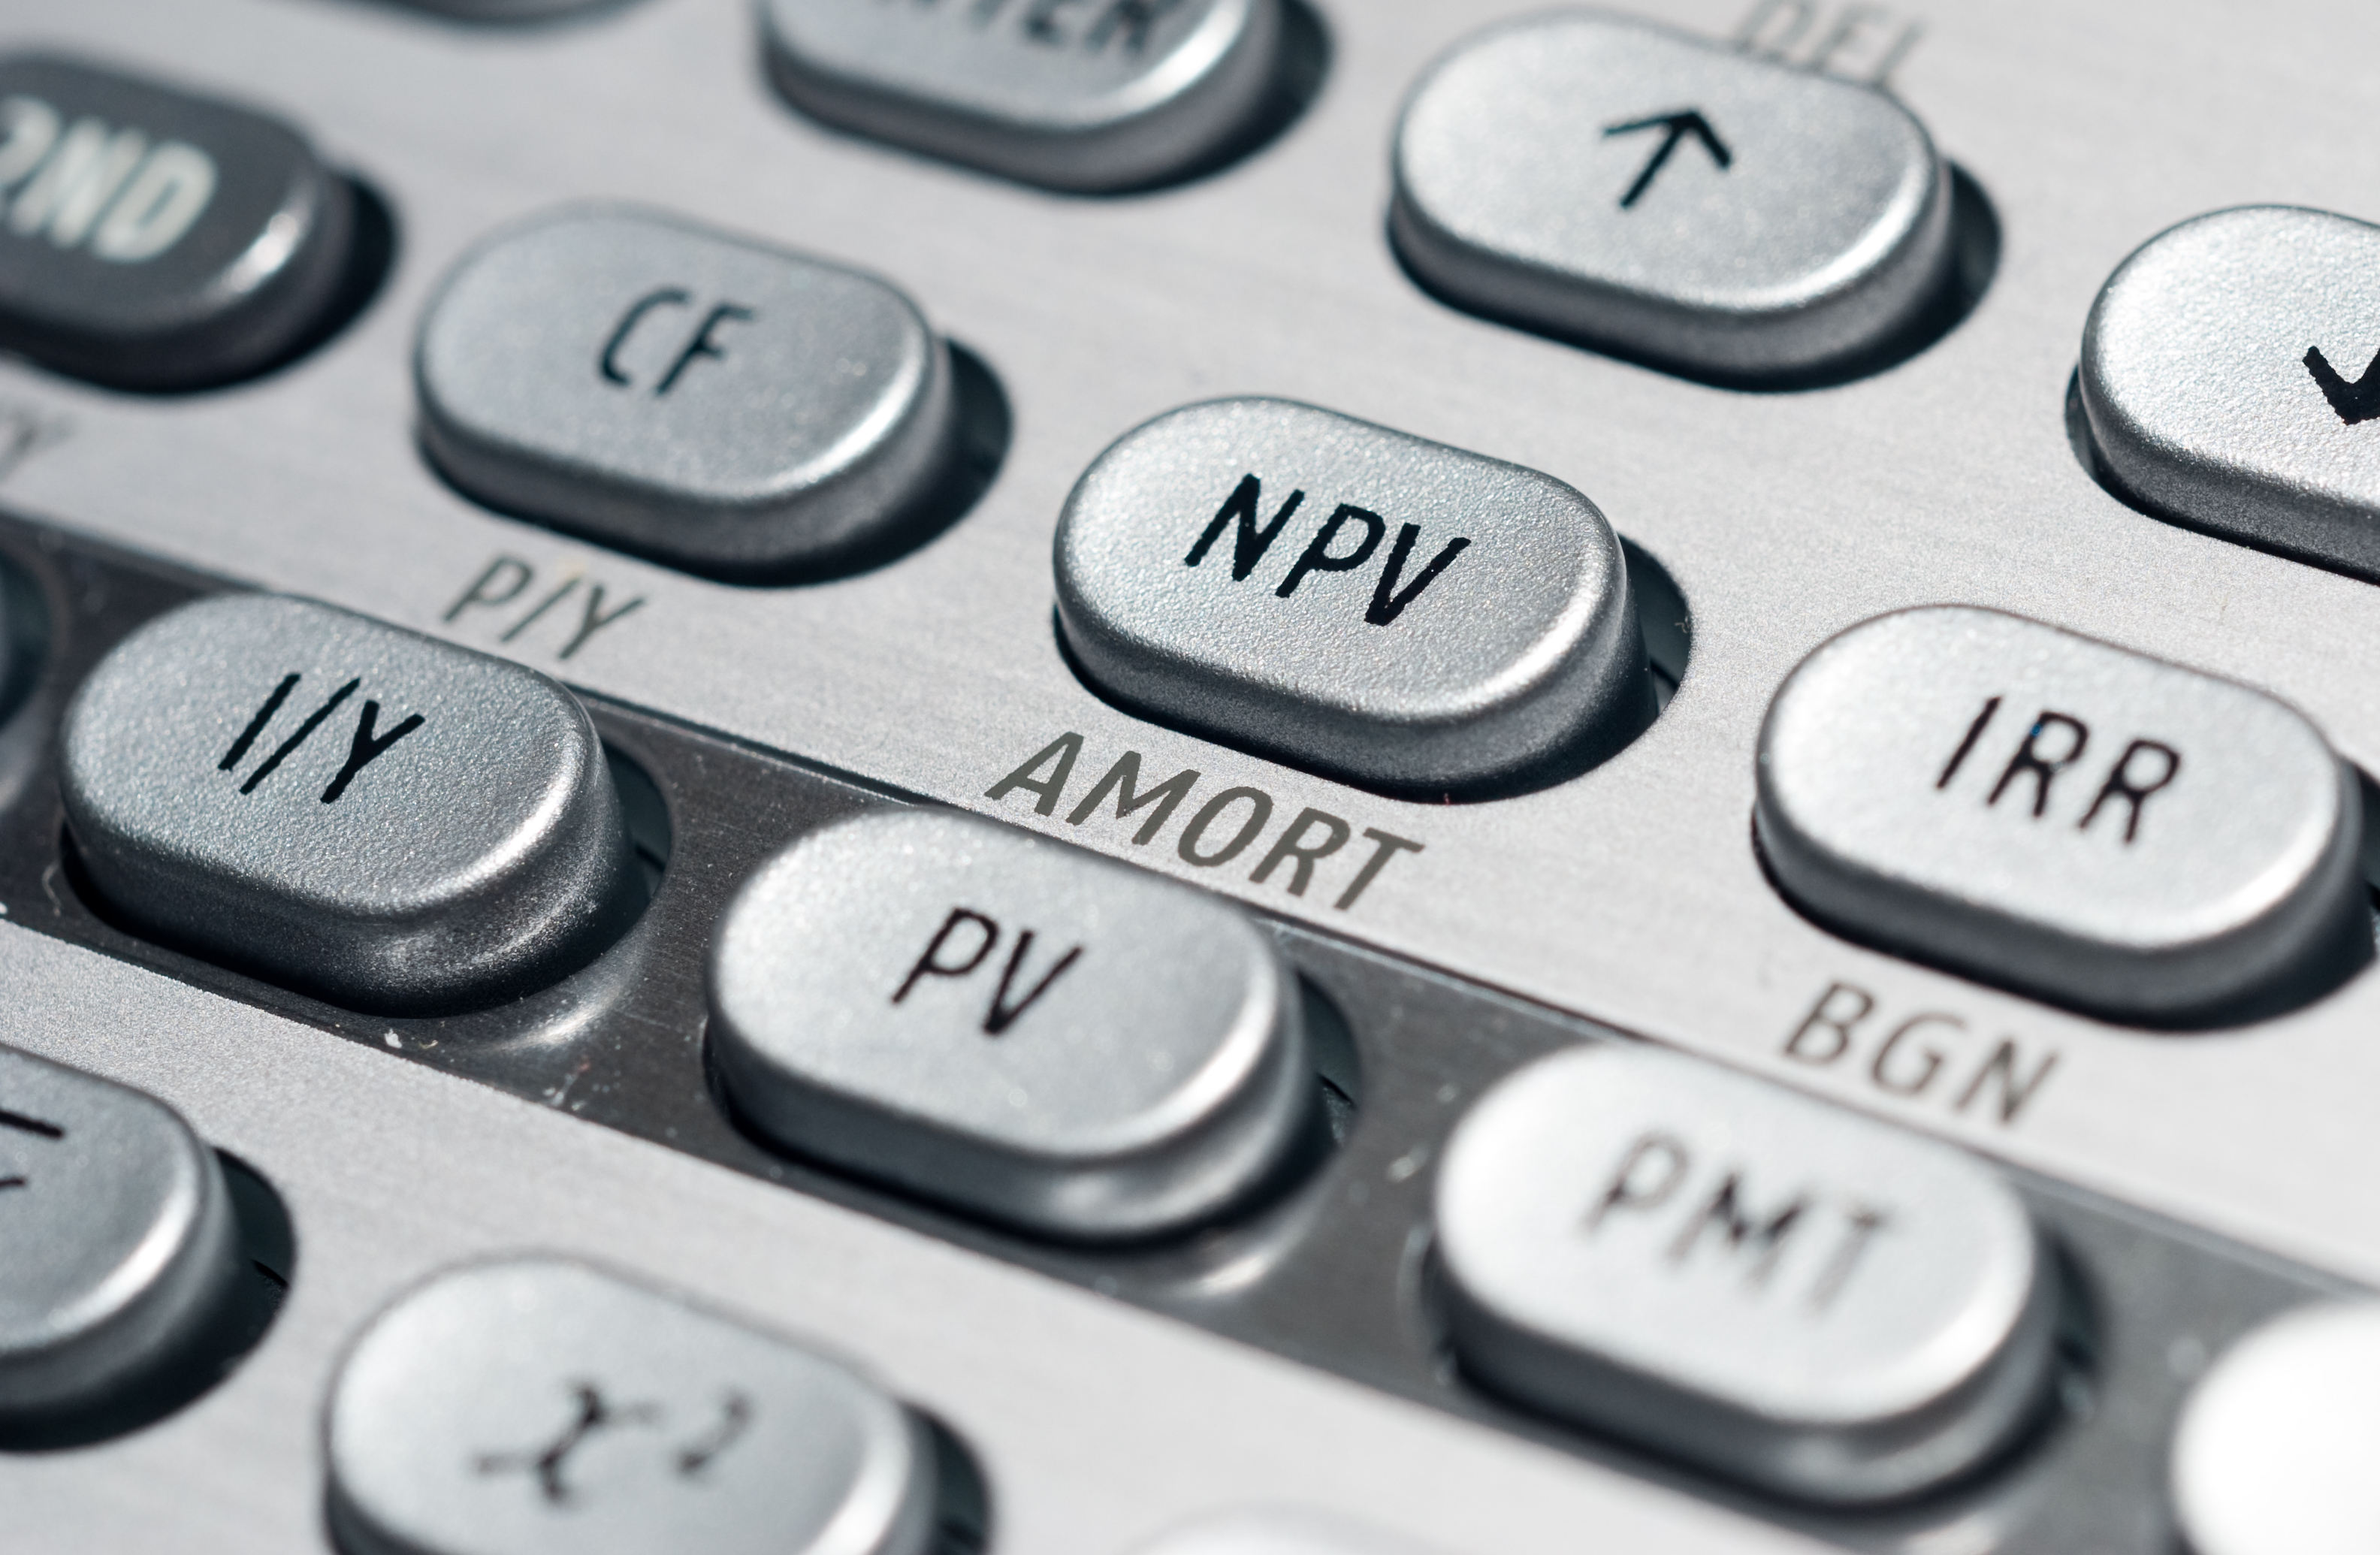 How to Use a Texas Instruments Financial Calculator